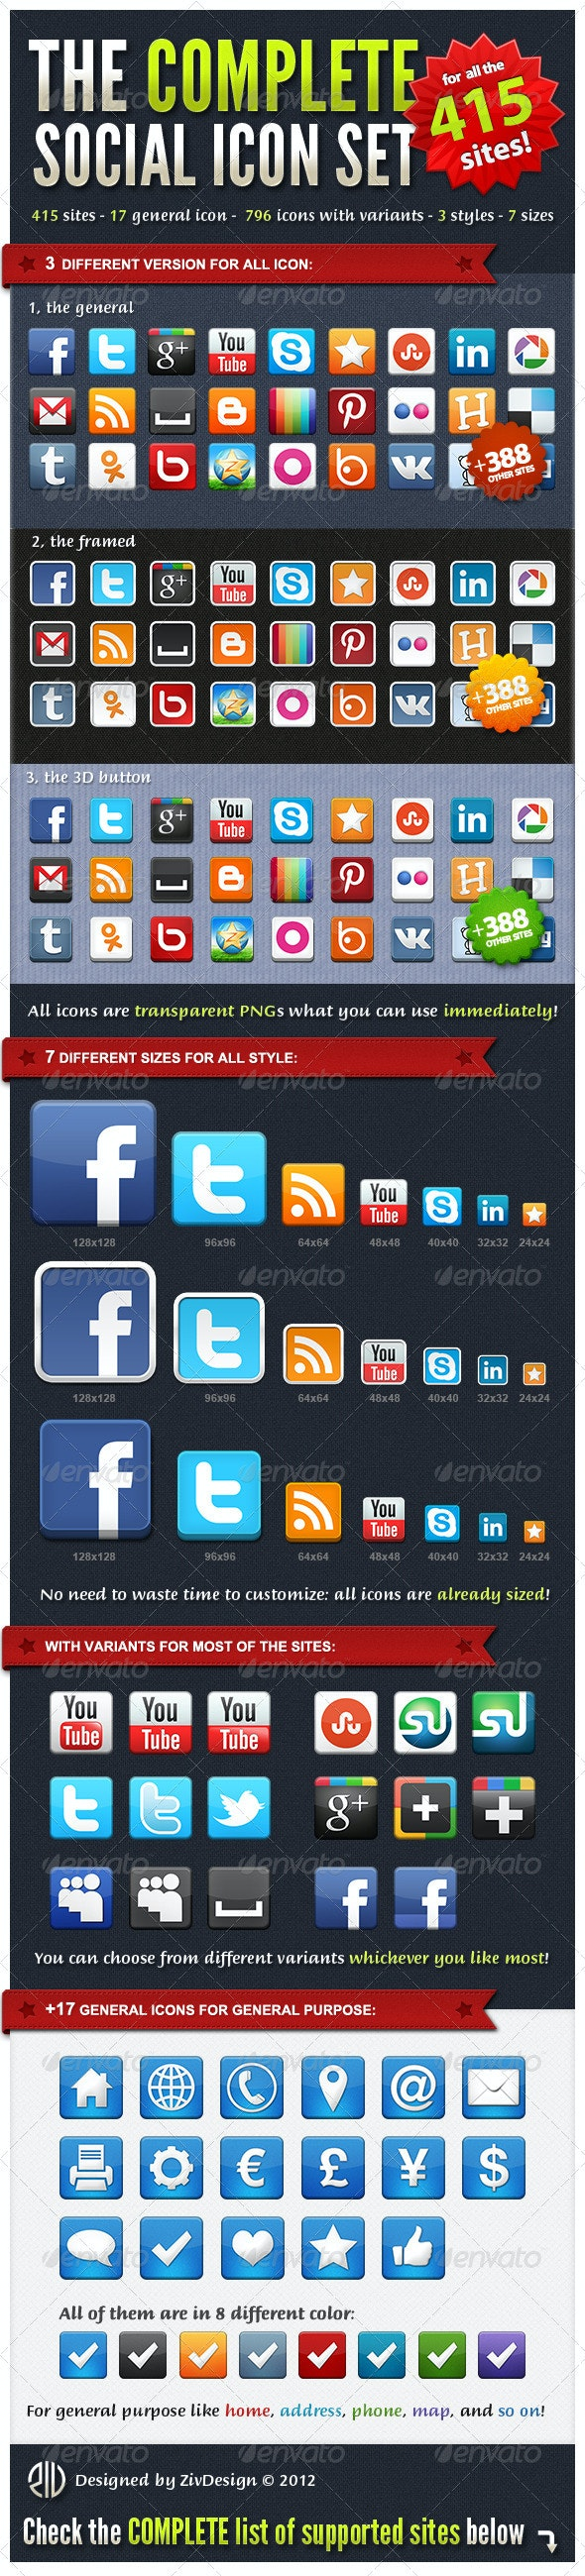 The Complete Social Icon Set for 415 Sites - Media Icons